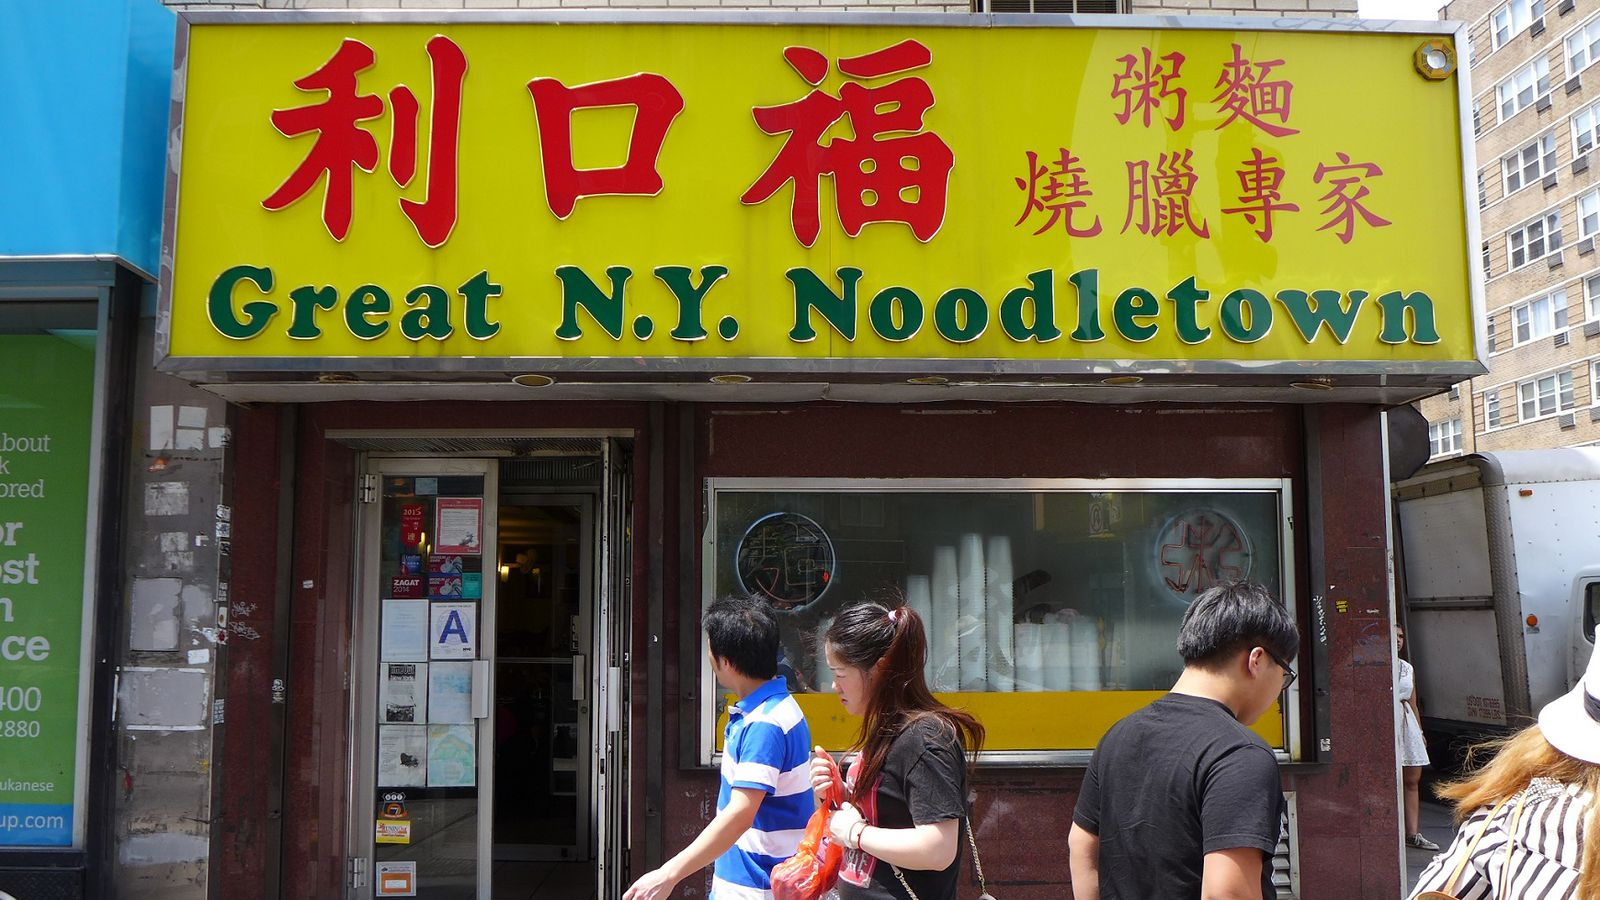 Noodletown S Chinese Charcuterie Tastes Best In The Middle